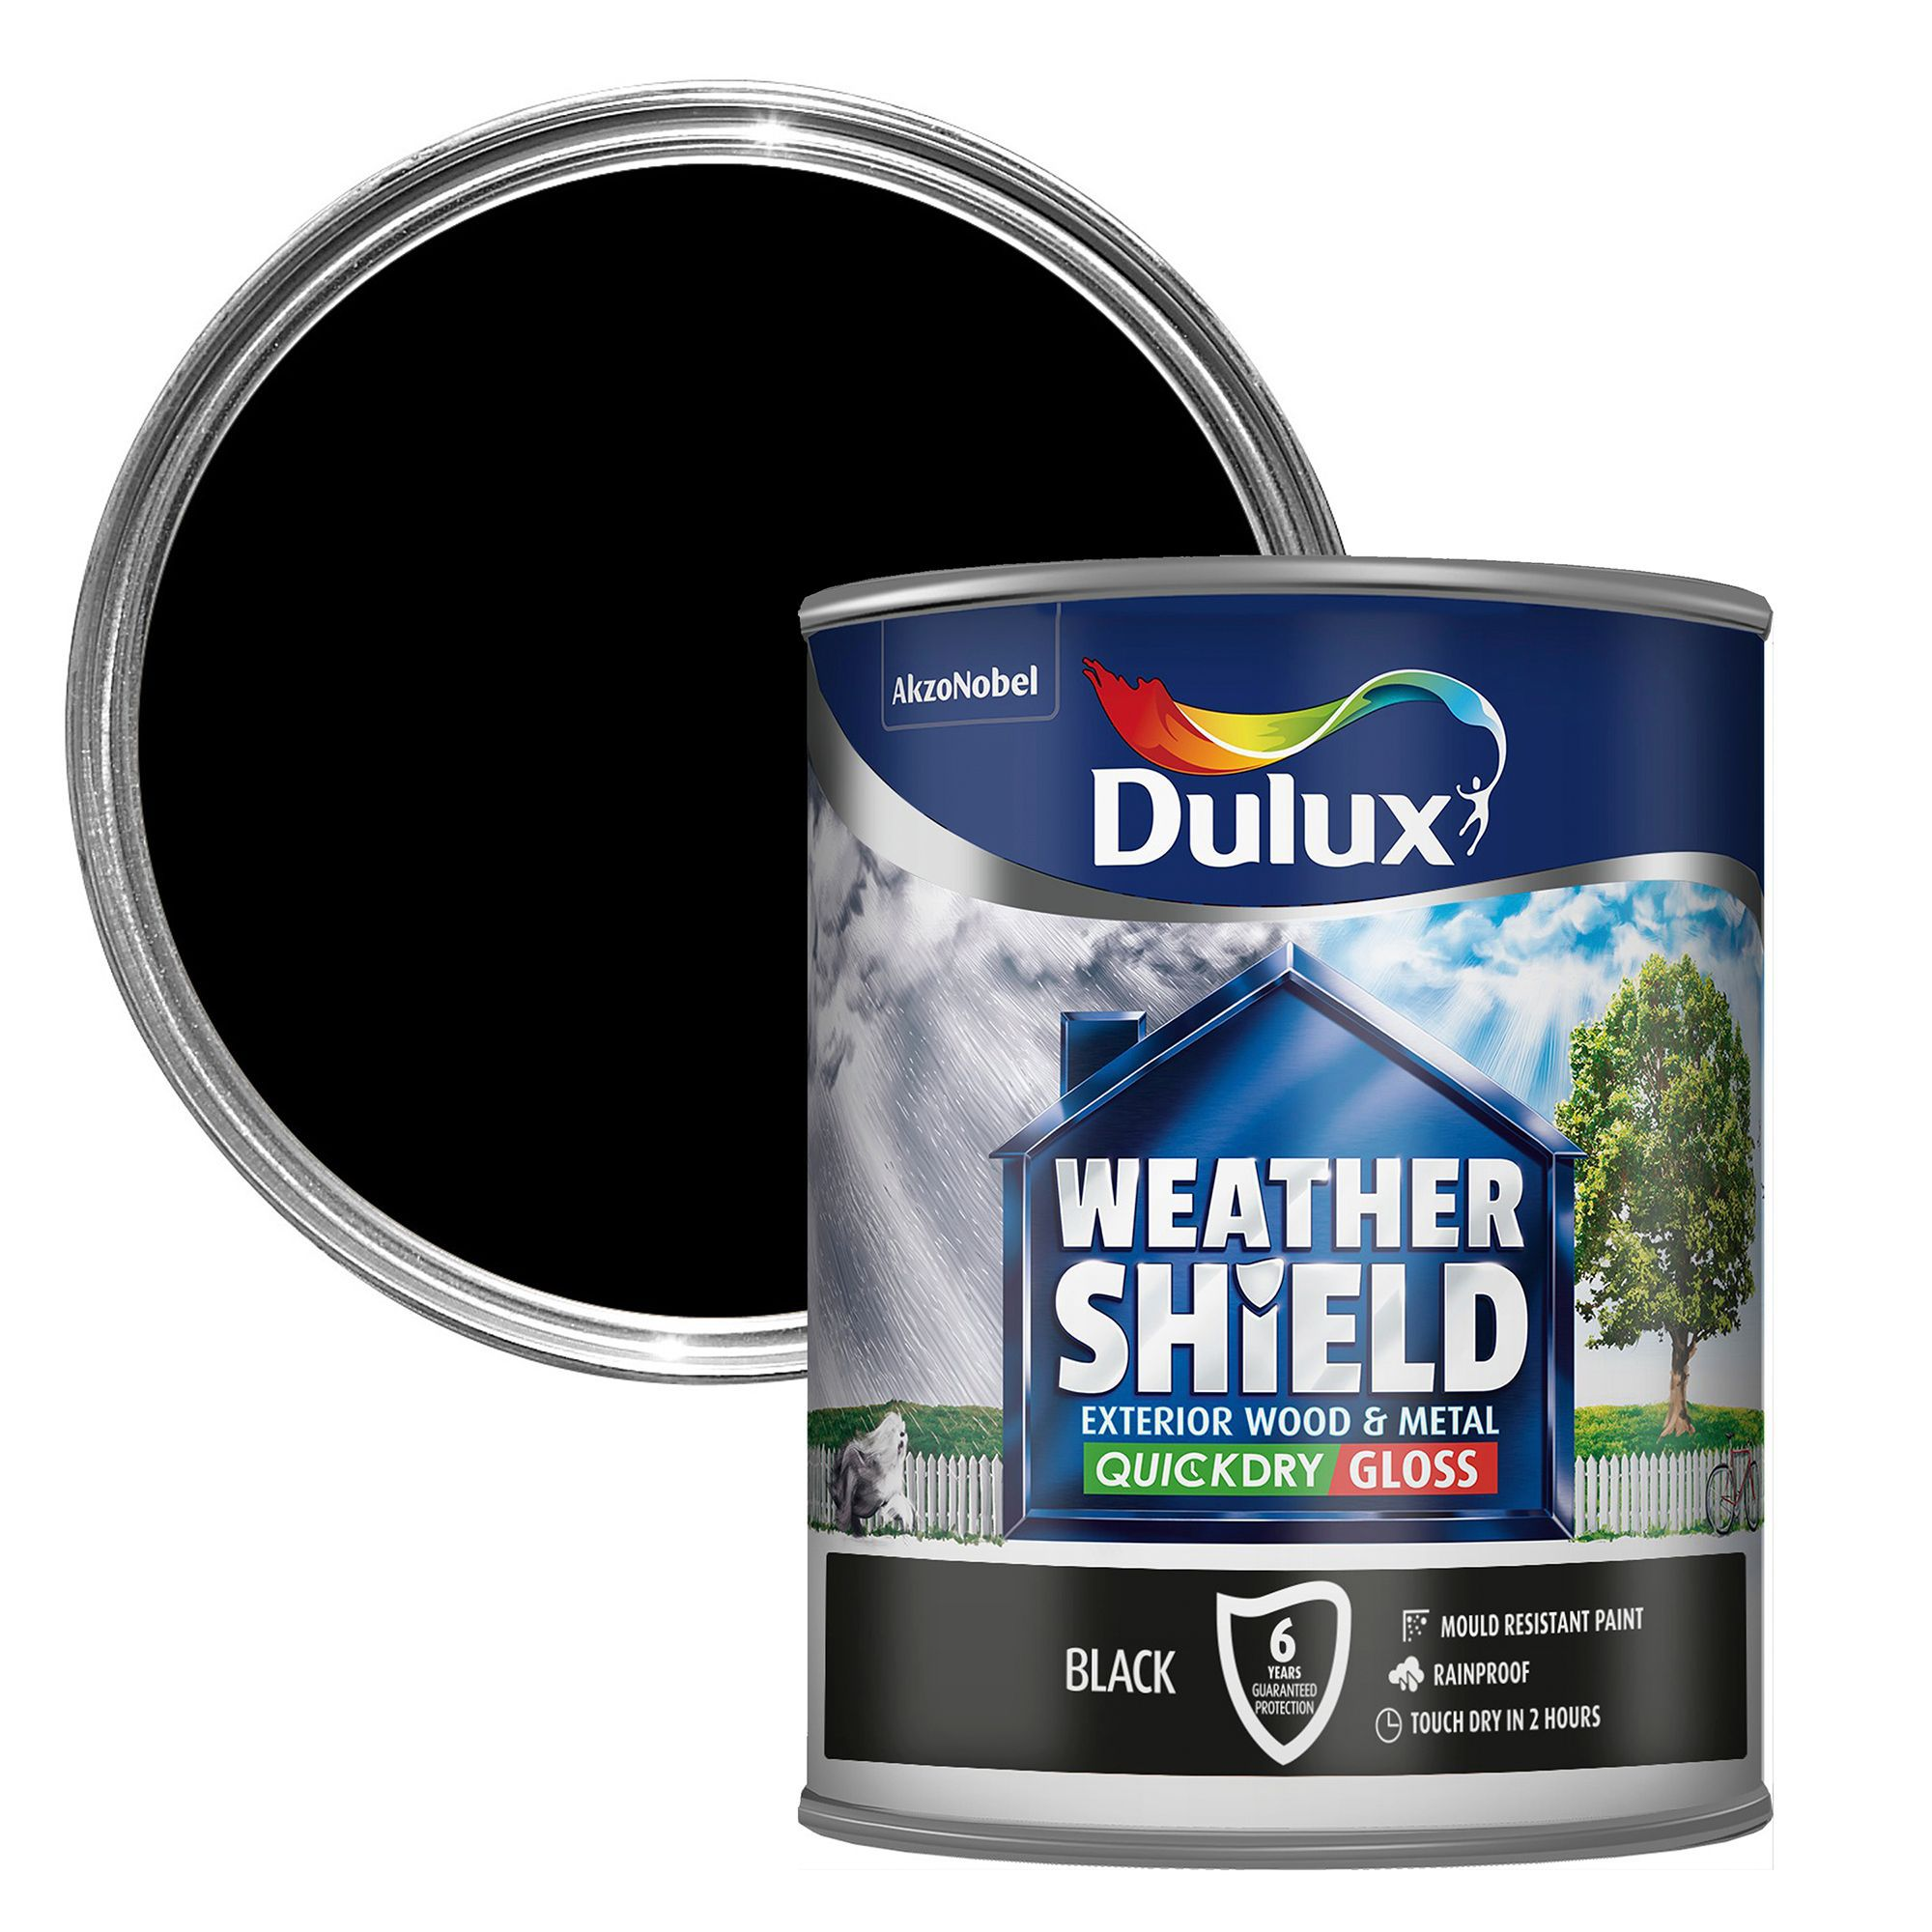 Dulux weathershield exterior black gloss wood metal paint 750ml departments diy at b q Cuprinol exterior wood preserver clear